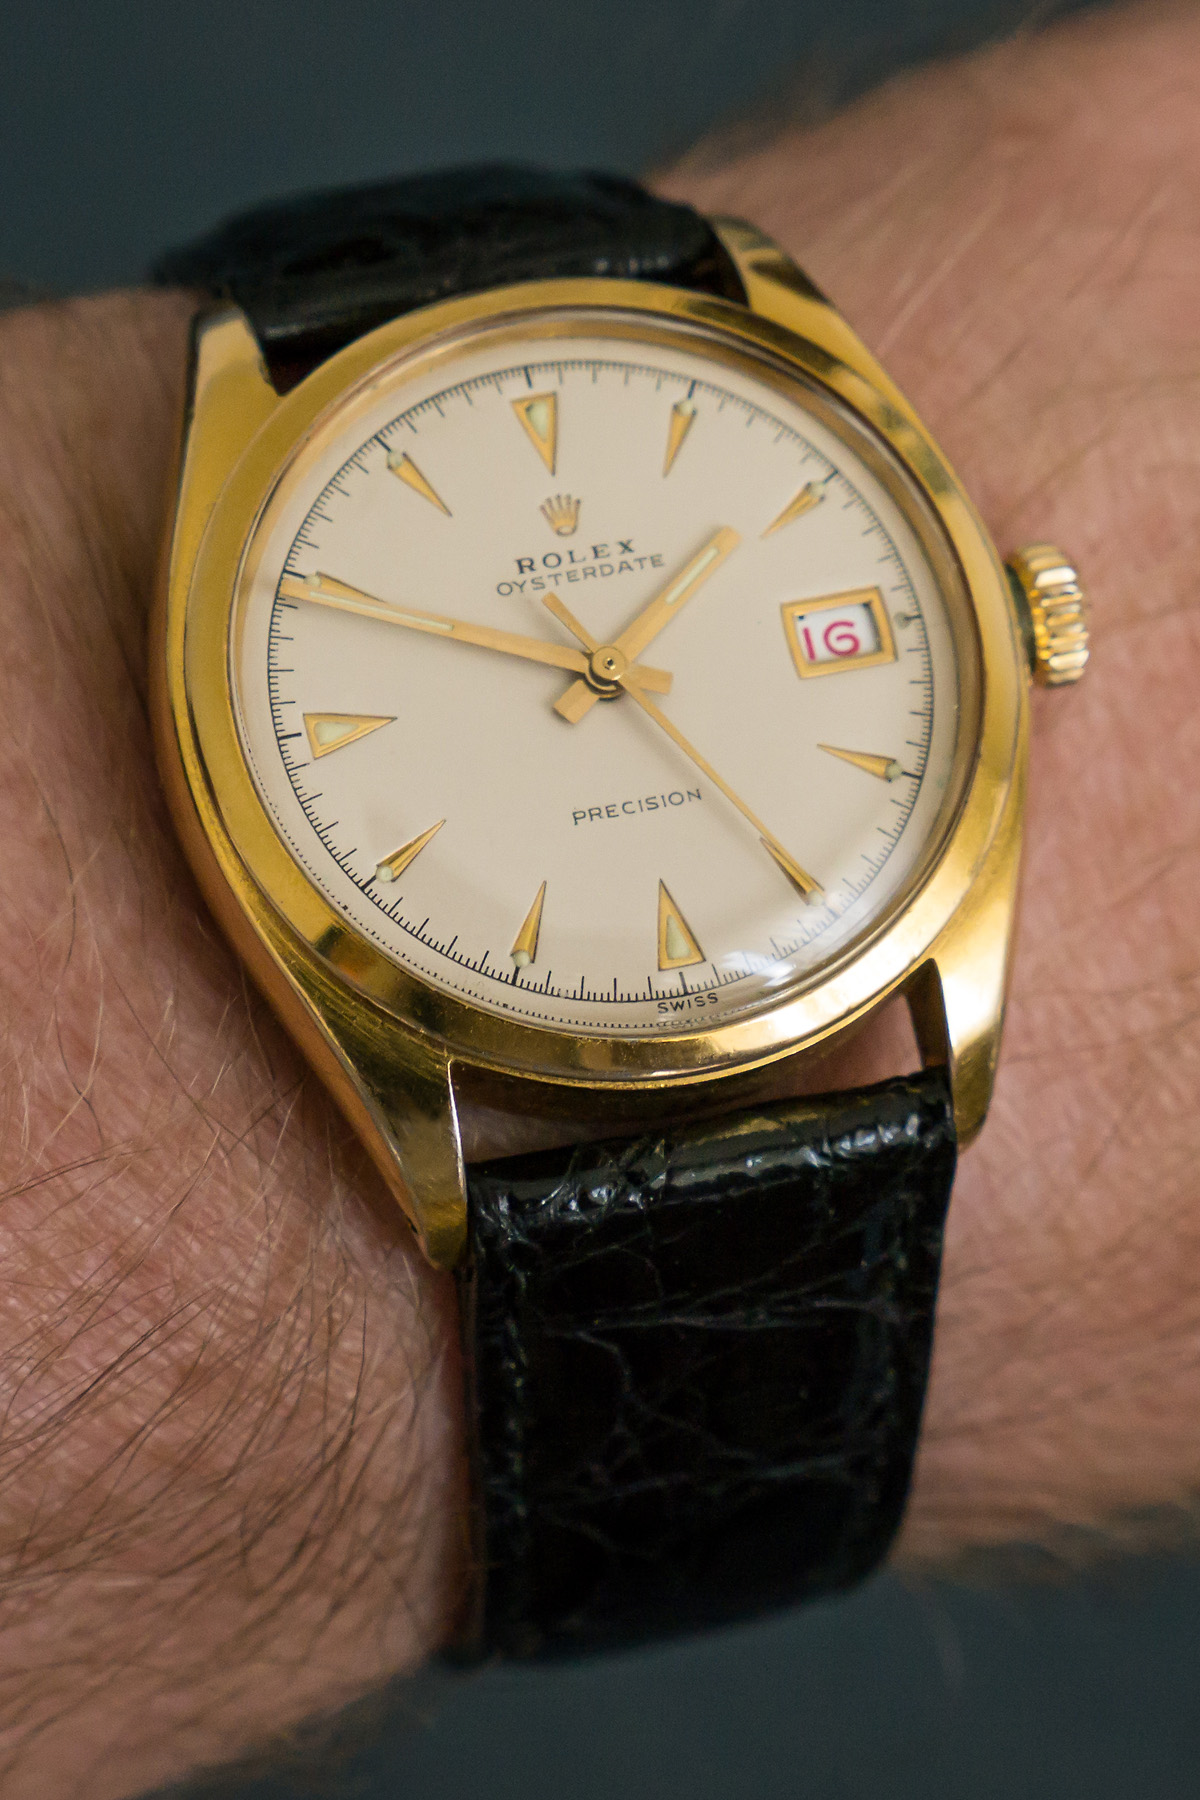 By Searching for Used Rolex Watches, You Can Finally Own This Status Symbol